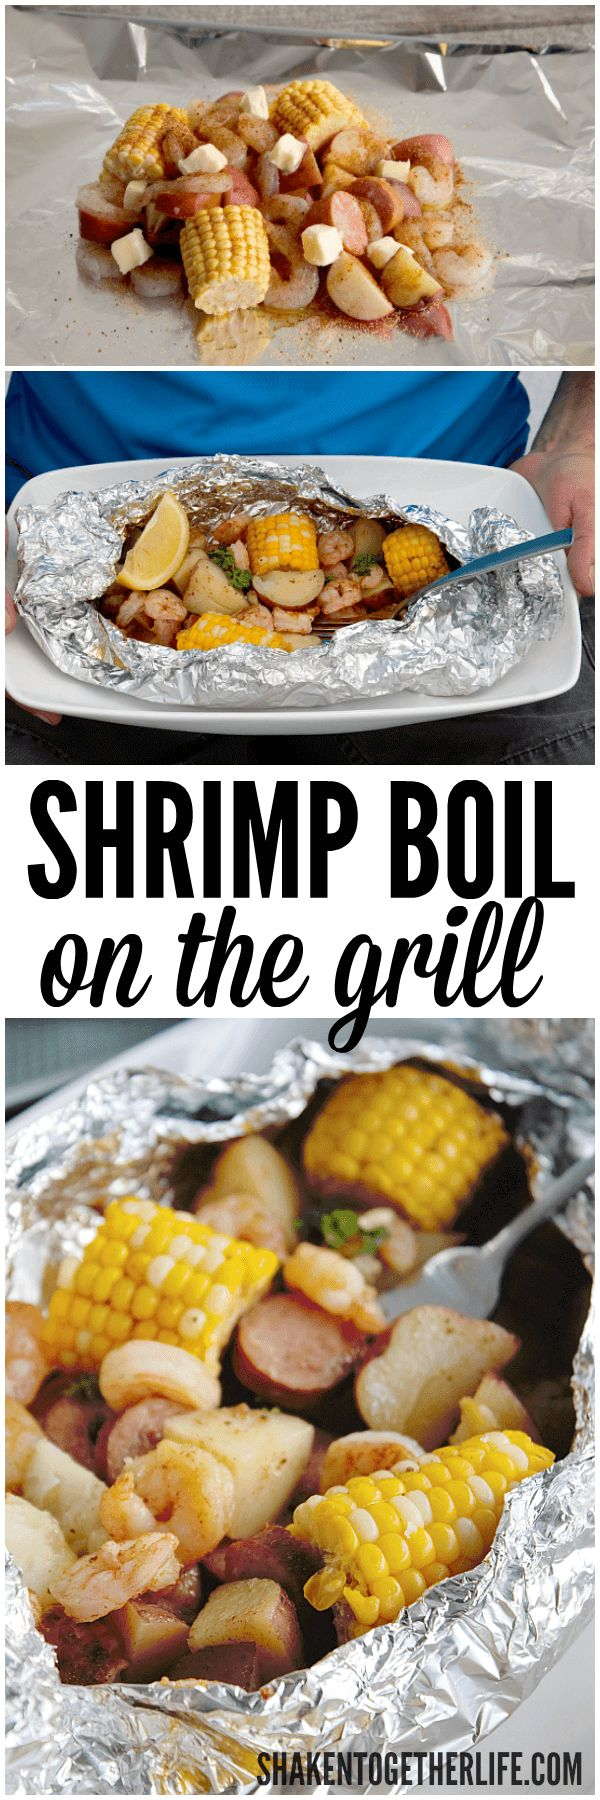 Move your shrimp boil from the stove top to the grill with our Shrimp Boil on the Grill! Seasoned potatoes, tender corn, smoky sausage and fresh shrimp cook to perfection in foil bundles and clean up couldn't be easier! #FreshFromFlorida #IC ad